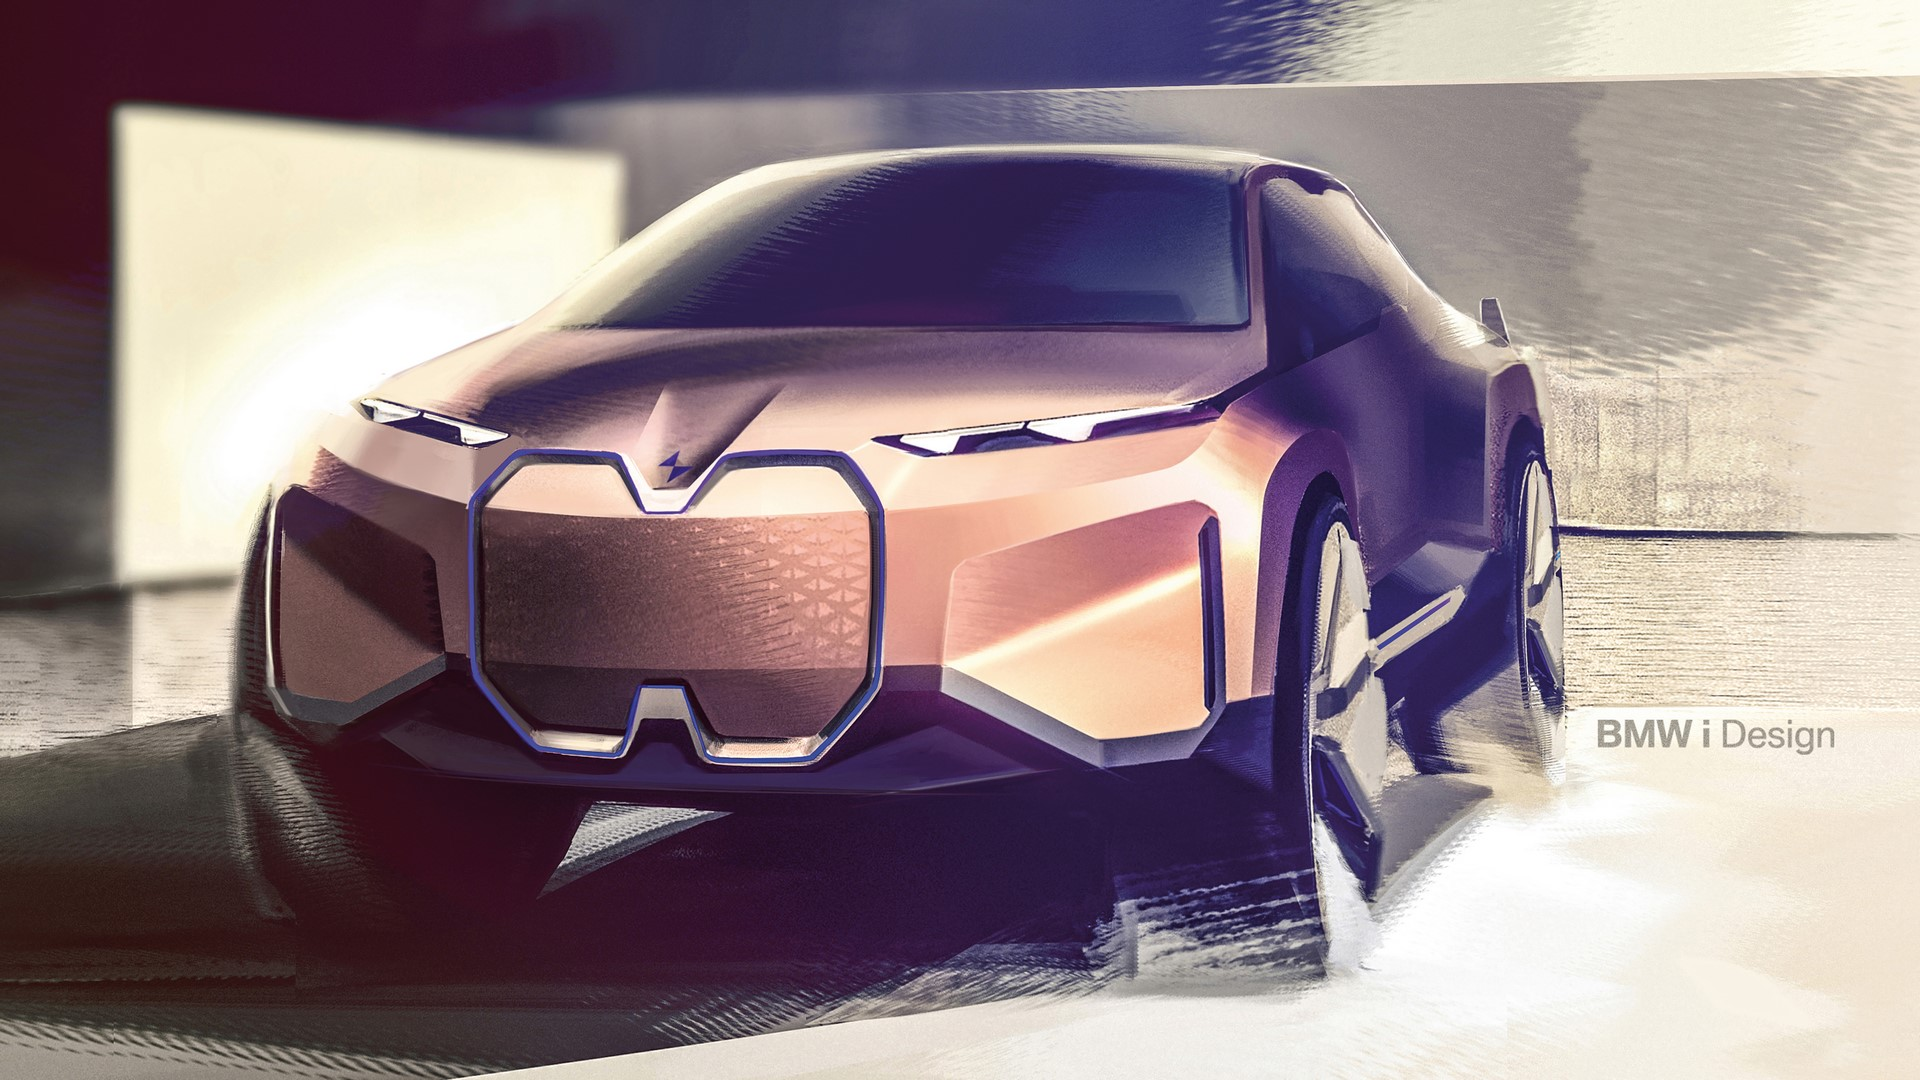 BMW Vision iNext Concept (104)